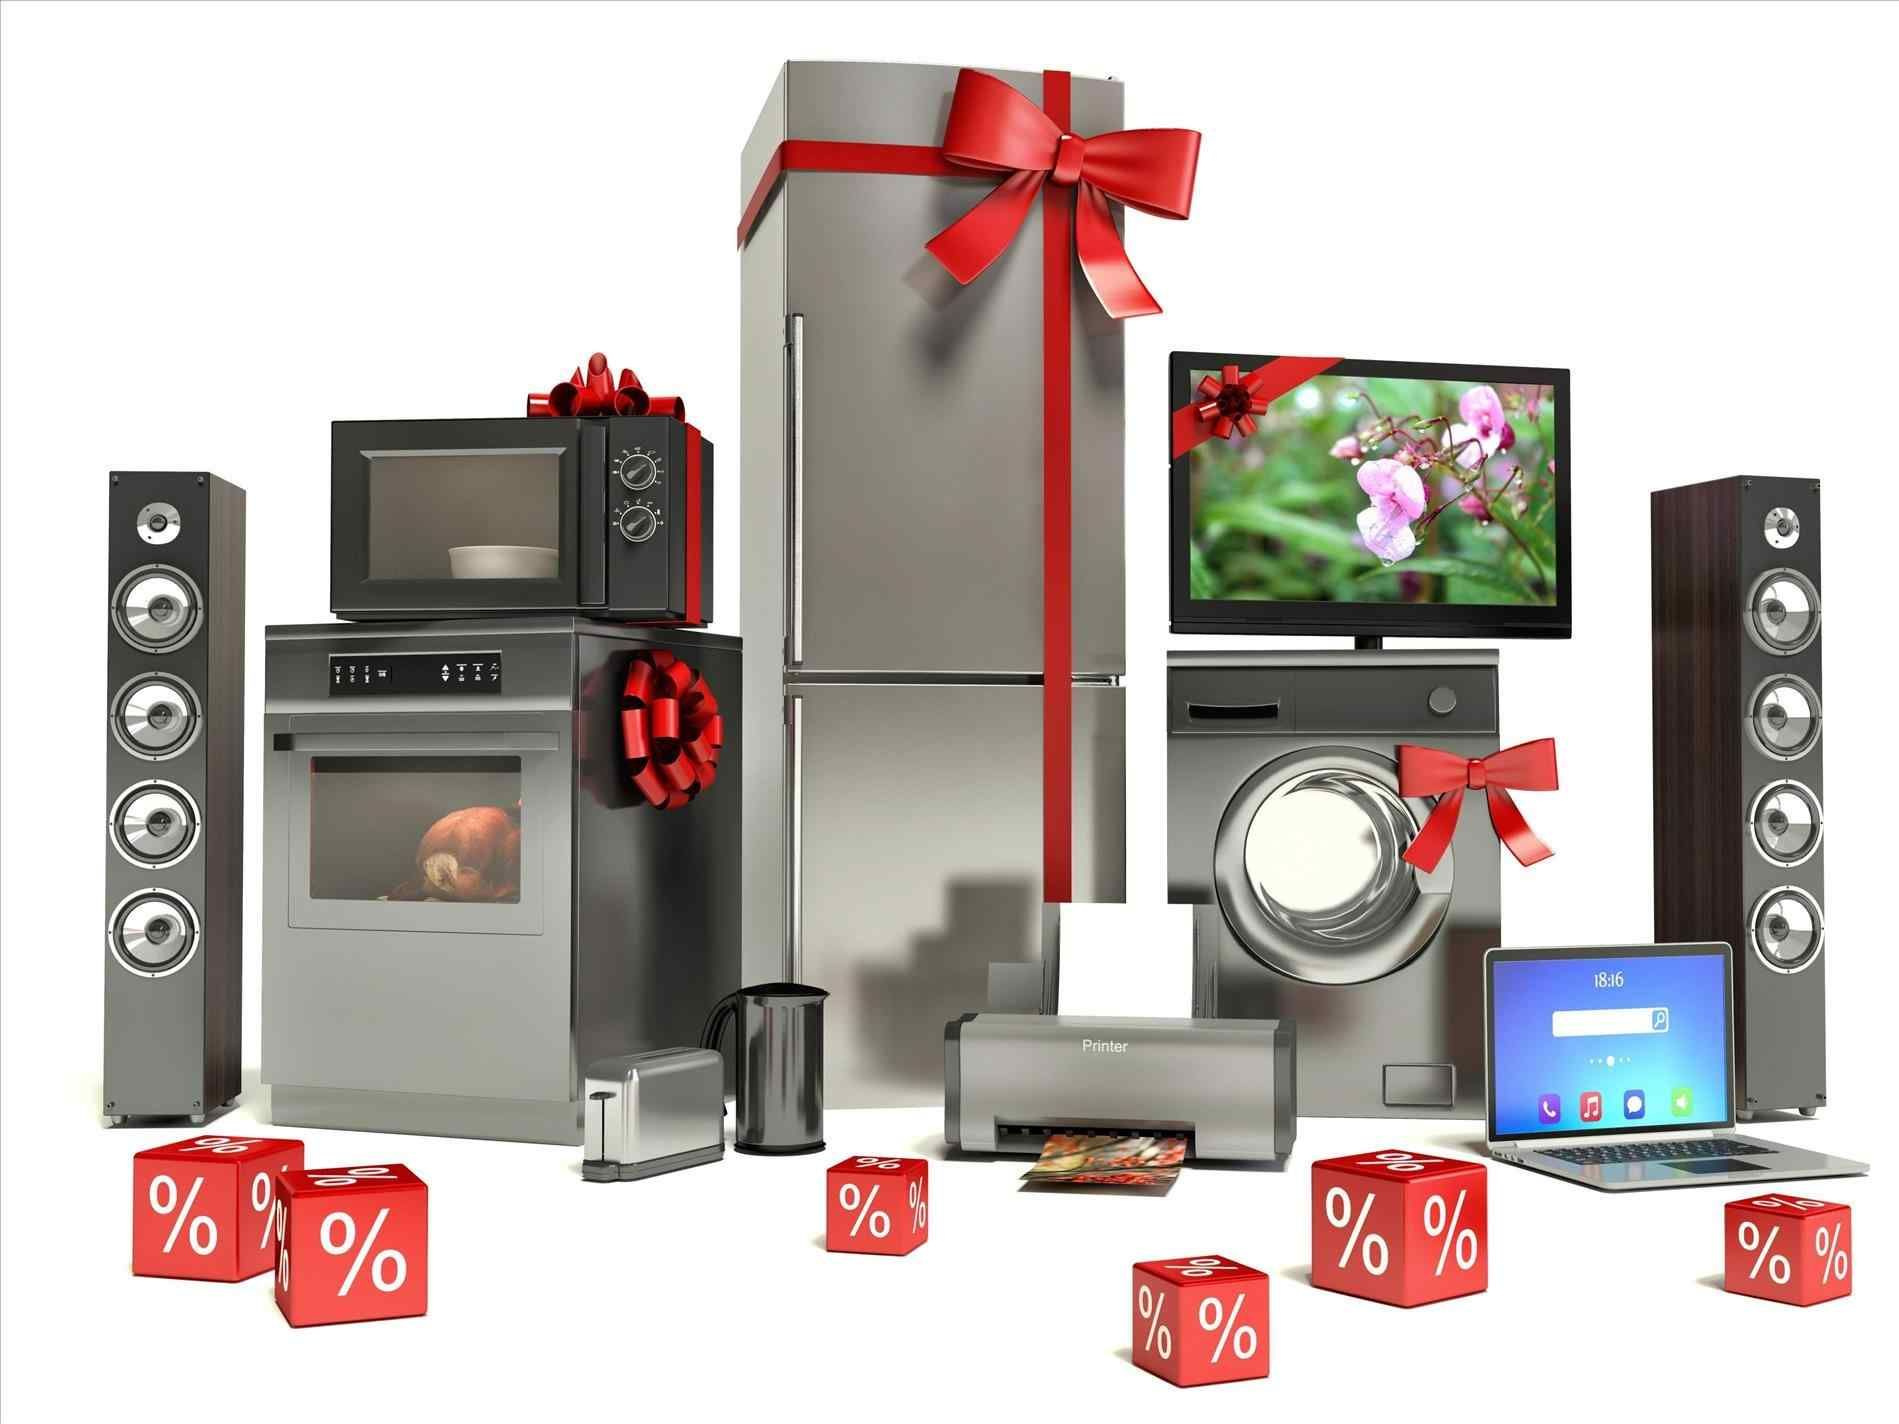 New Home Appliances Banner Hd At Xx16 Info Electronic Appliances Home Appliances Buy Used Furniture